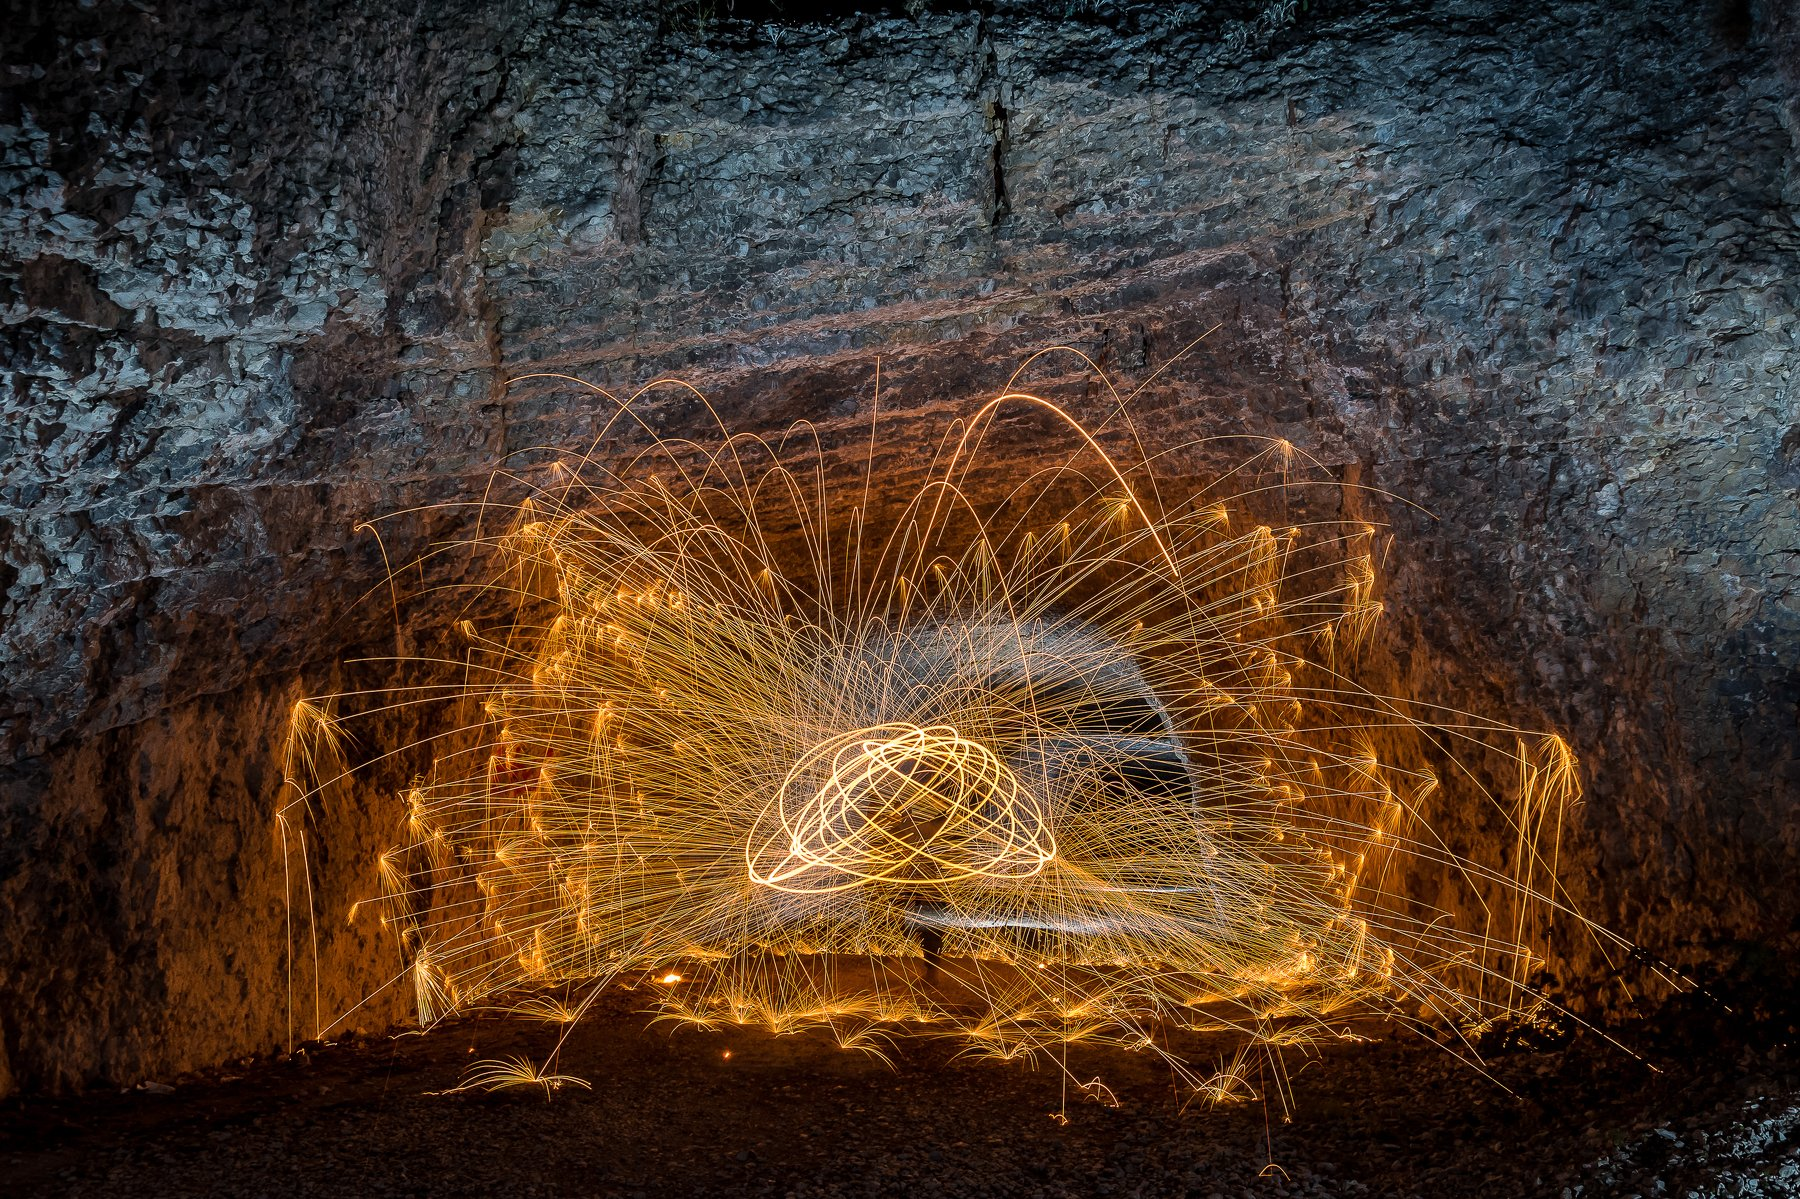 #light #cave #idea #fire #absstract #orange #places #style #travel #fireworks #nature, Nikolay Nikolov